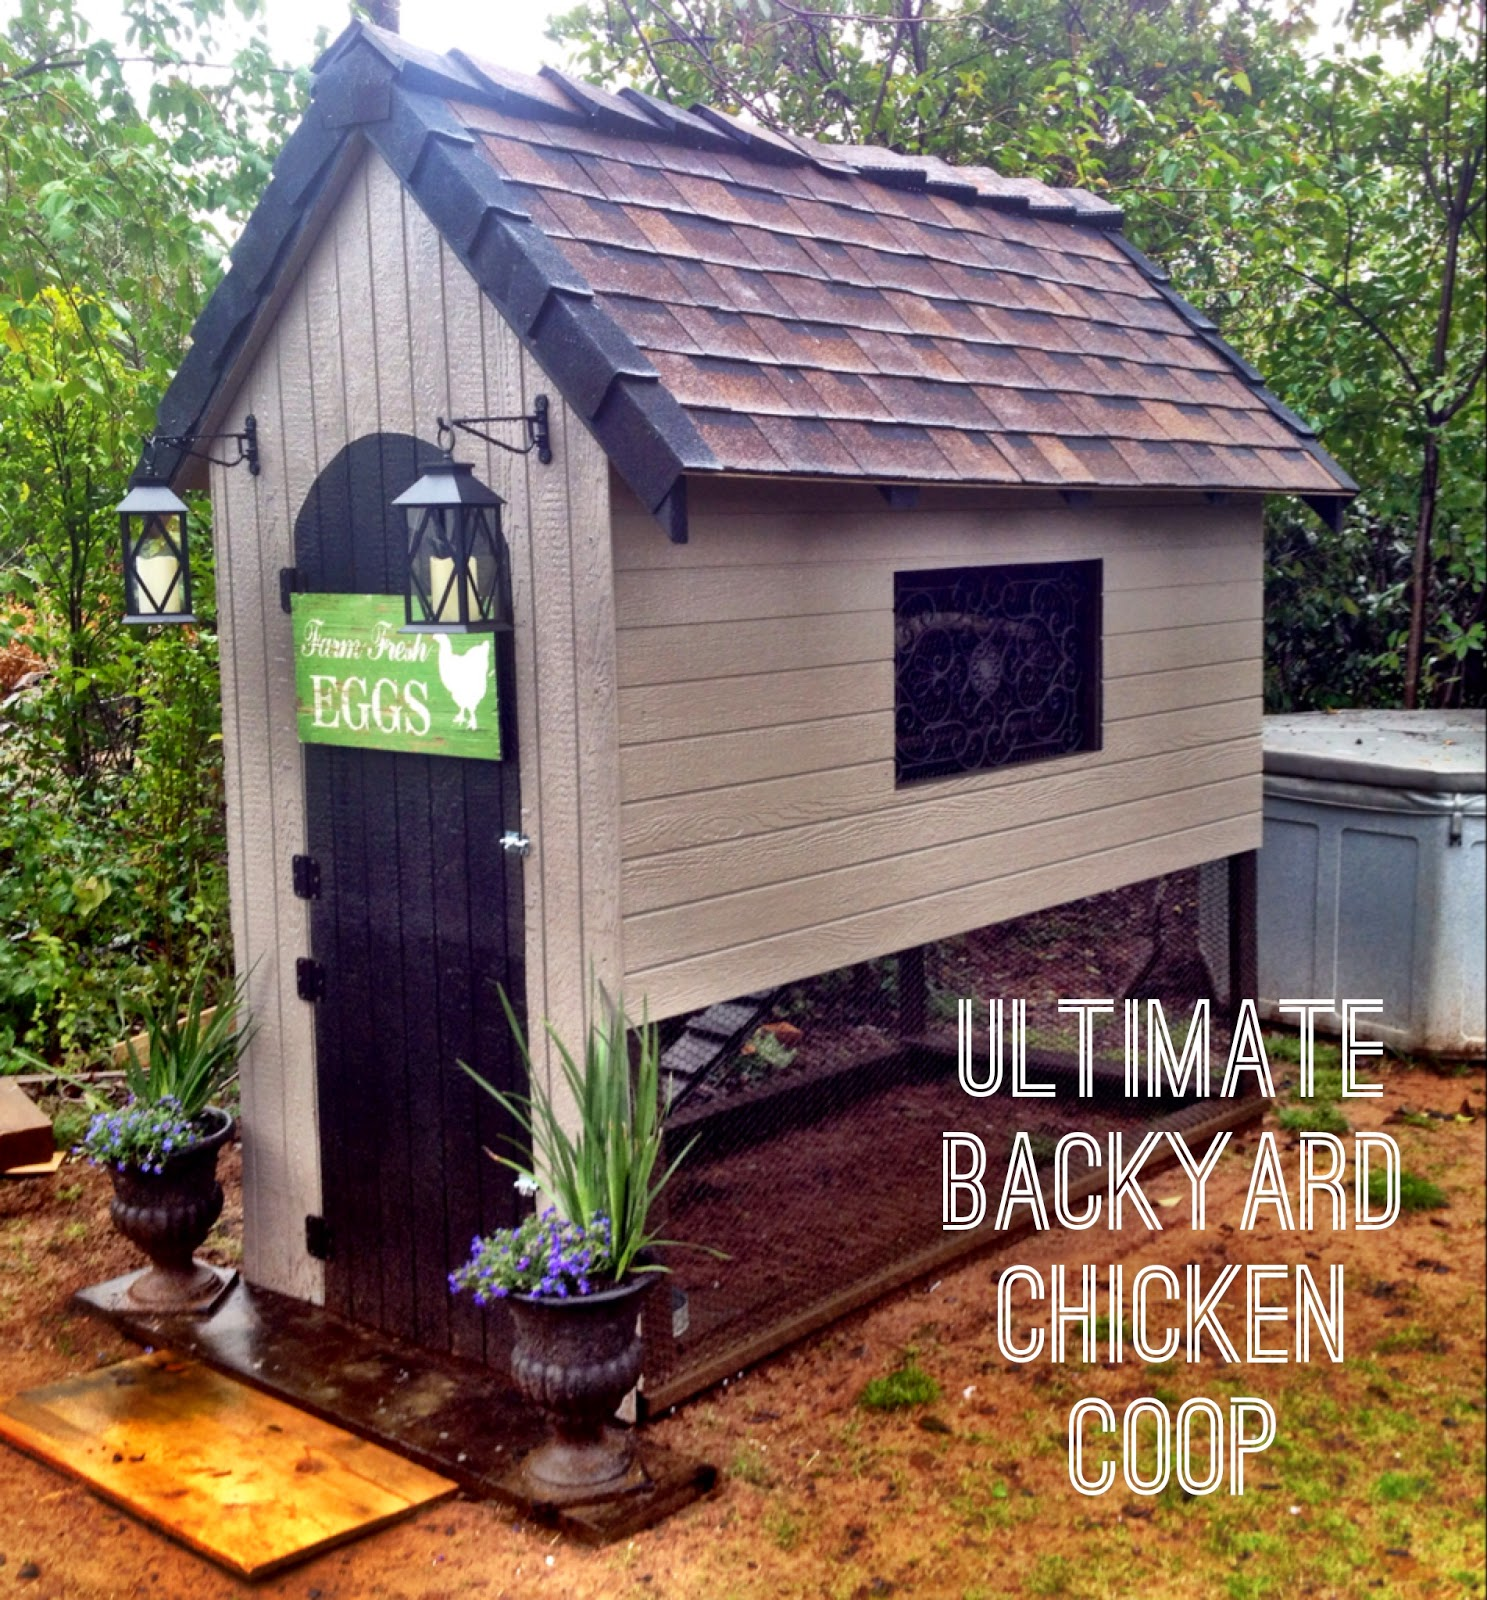 silkie chicken coop designs all about chicken coop 2017 ideas